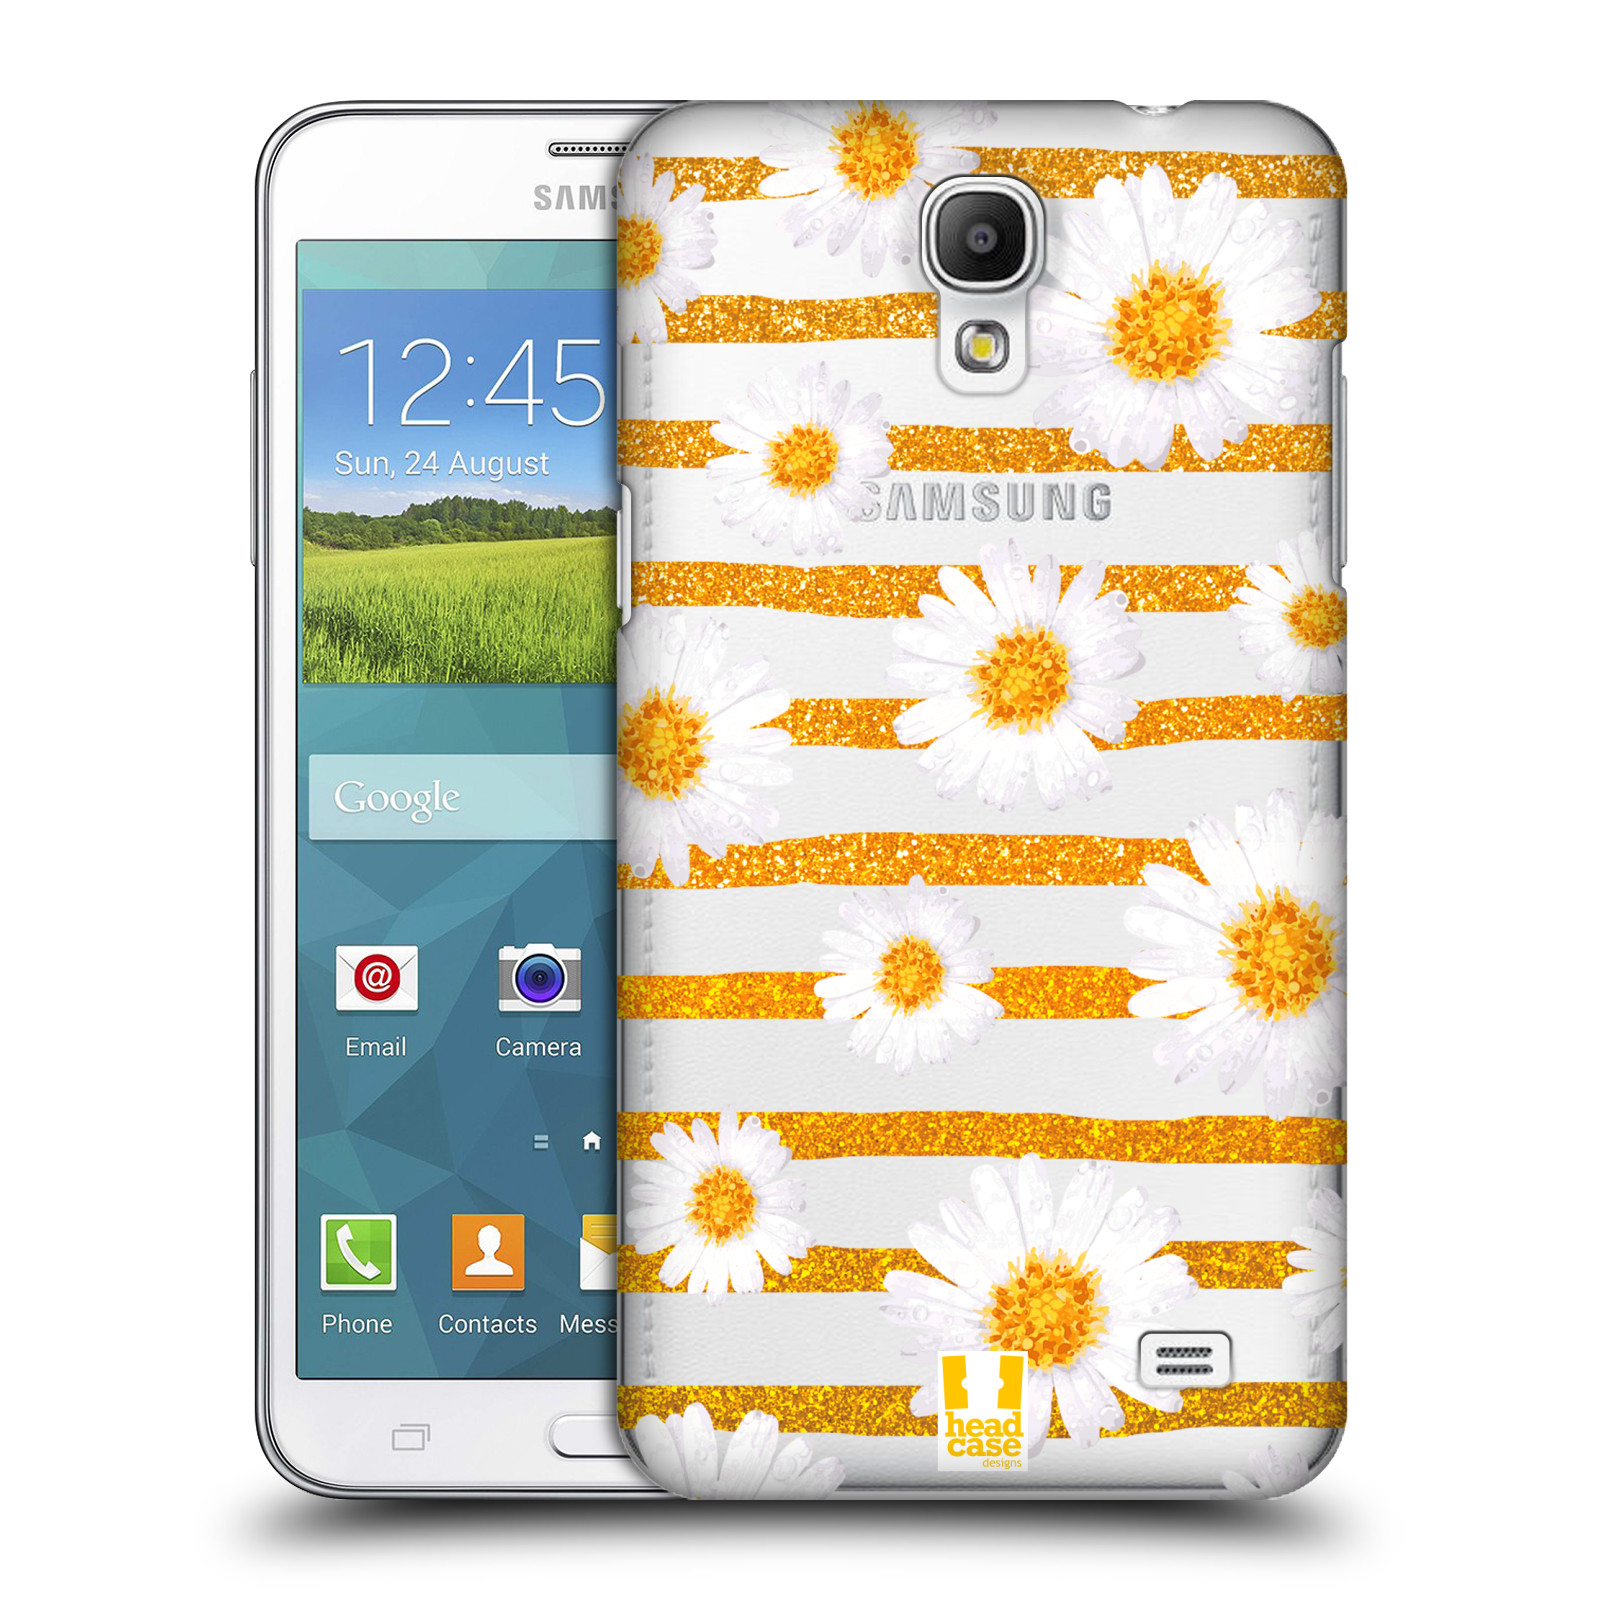 HEAD-CASE-DESIGNS-TREND-CRAZE-RUCKSEITE-HULLE-FUR-SAMSUNG-HANDYS-4